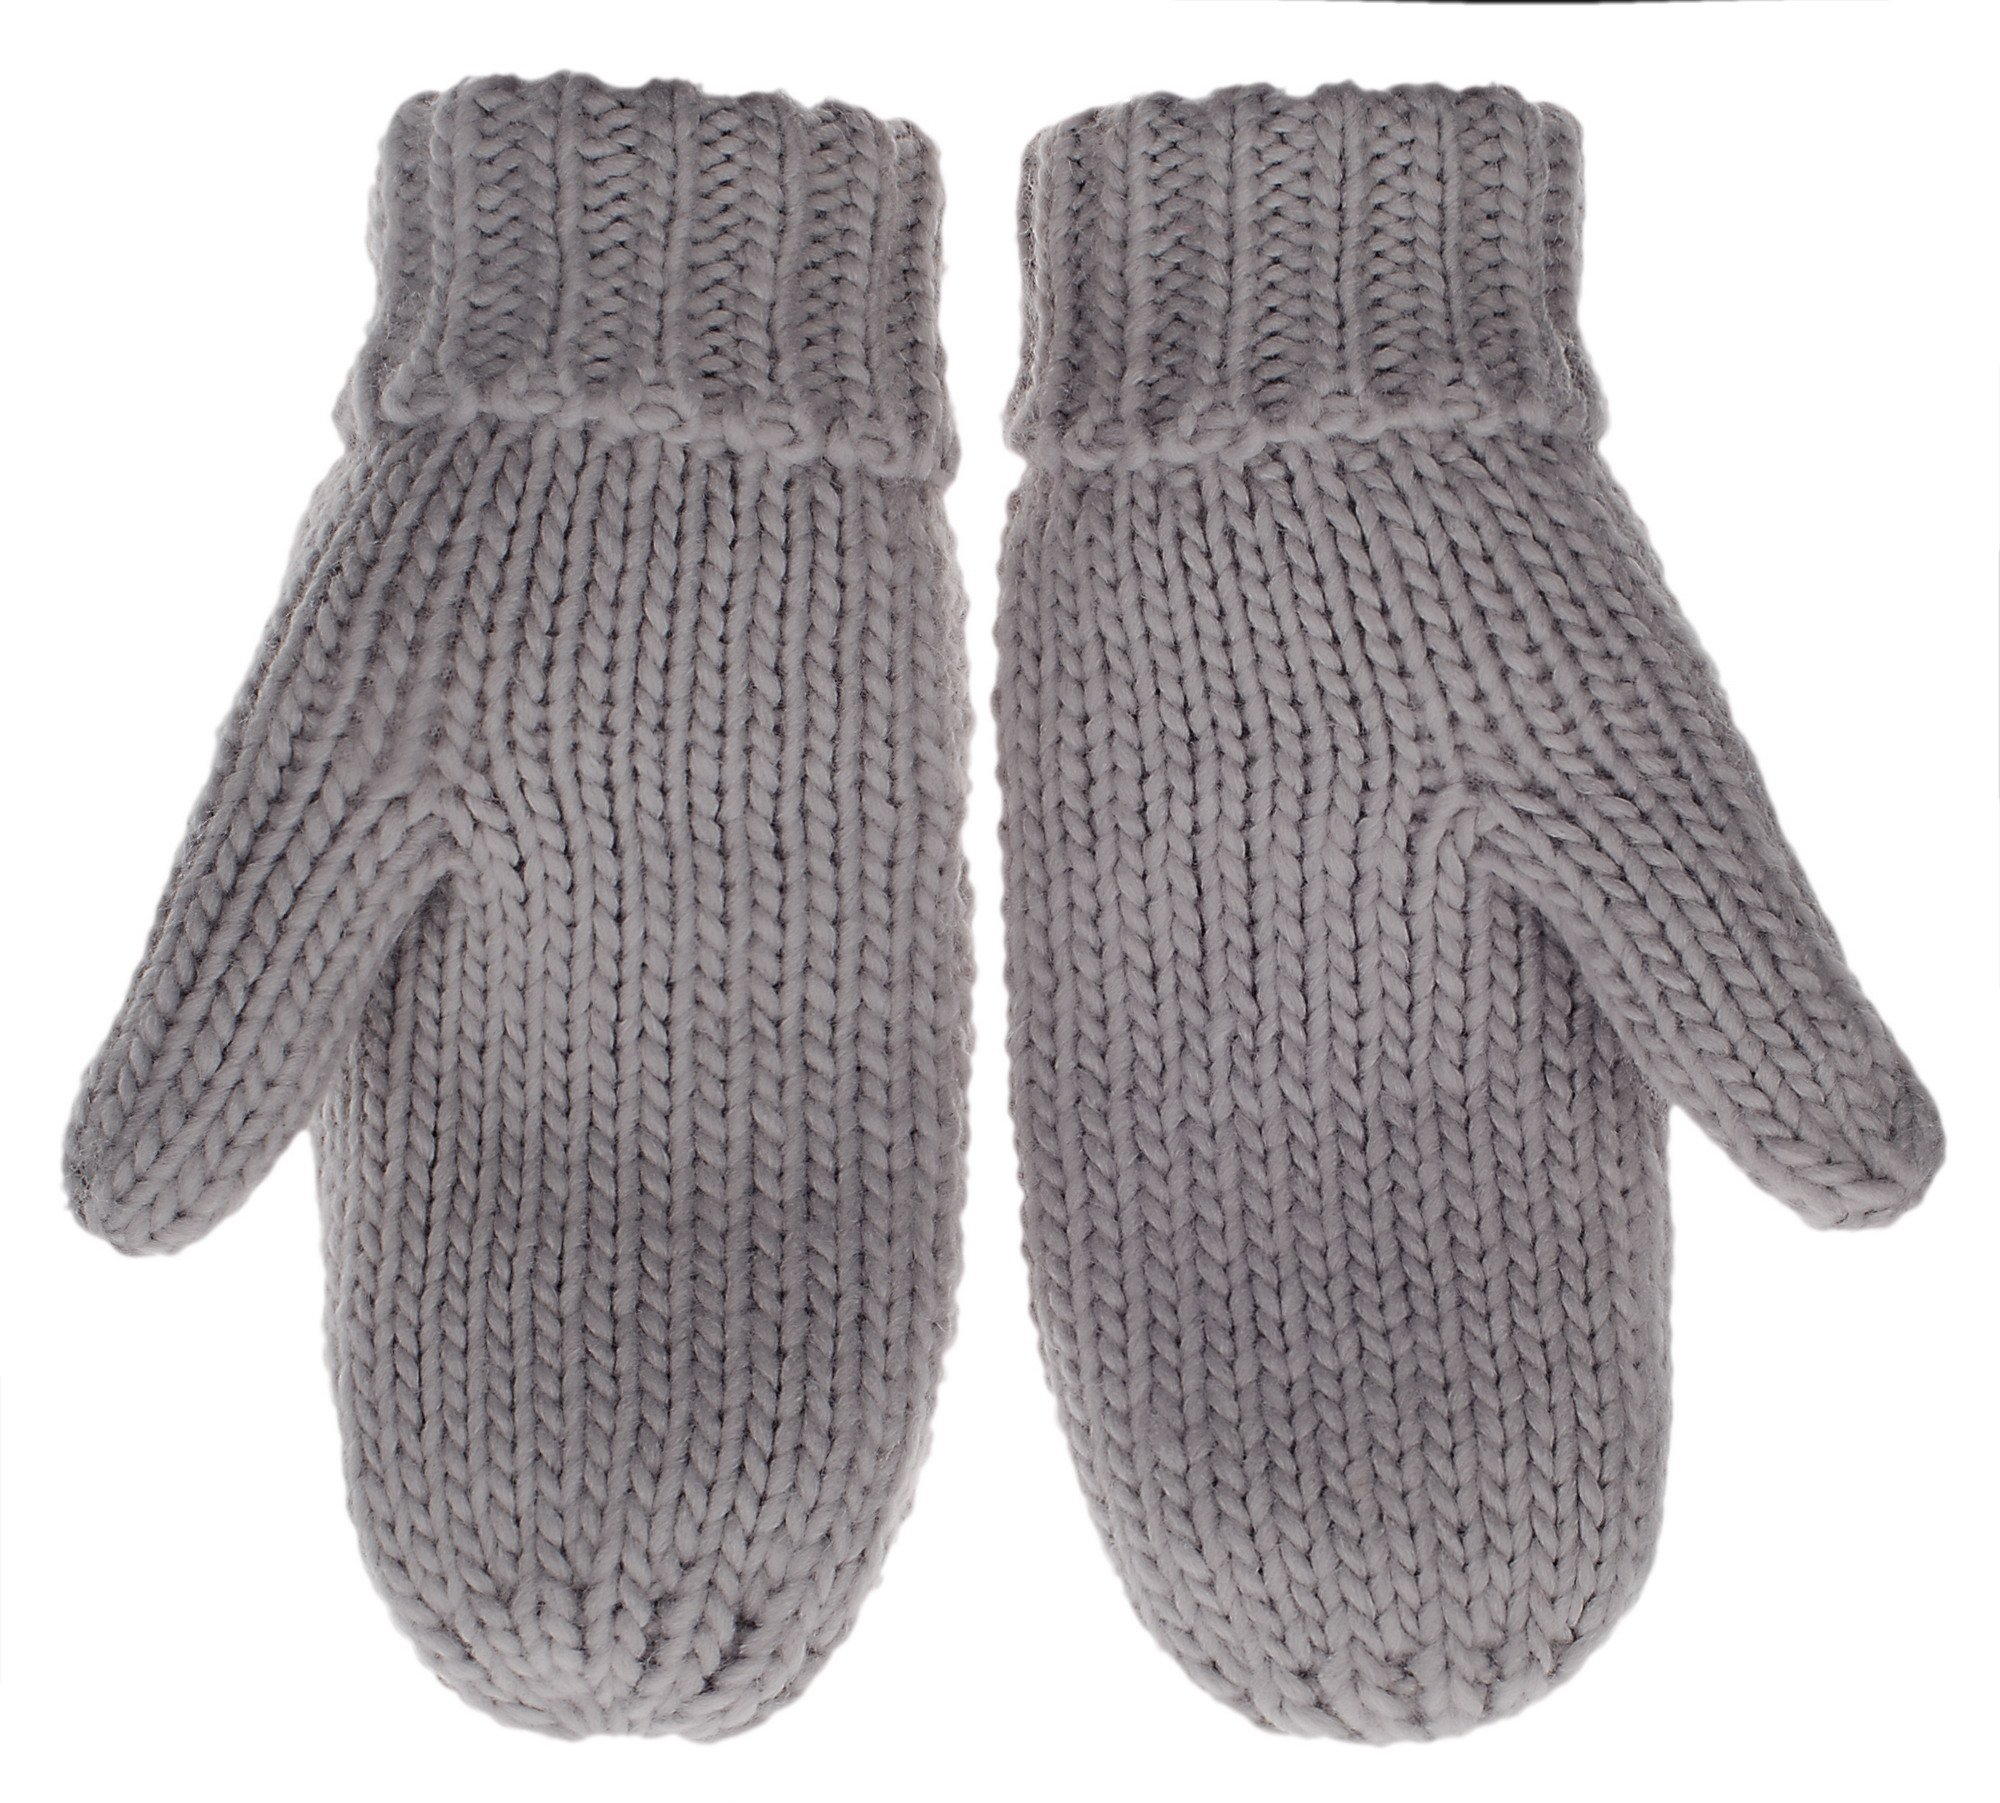 IL Caldo Womens Winter Glove Hemp Plush Lining Thick Knit Mitten Drive Work Gloves,Dark gray